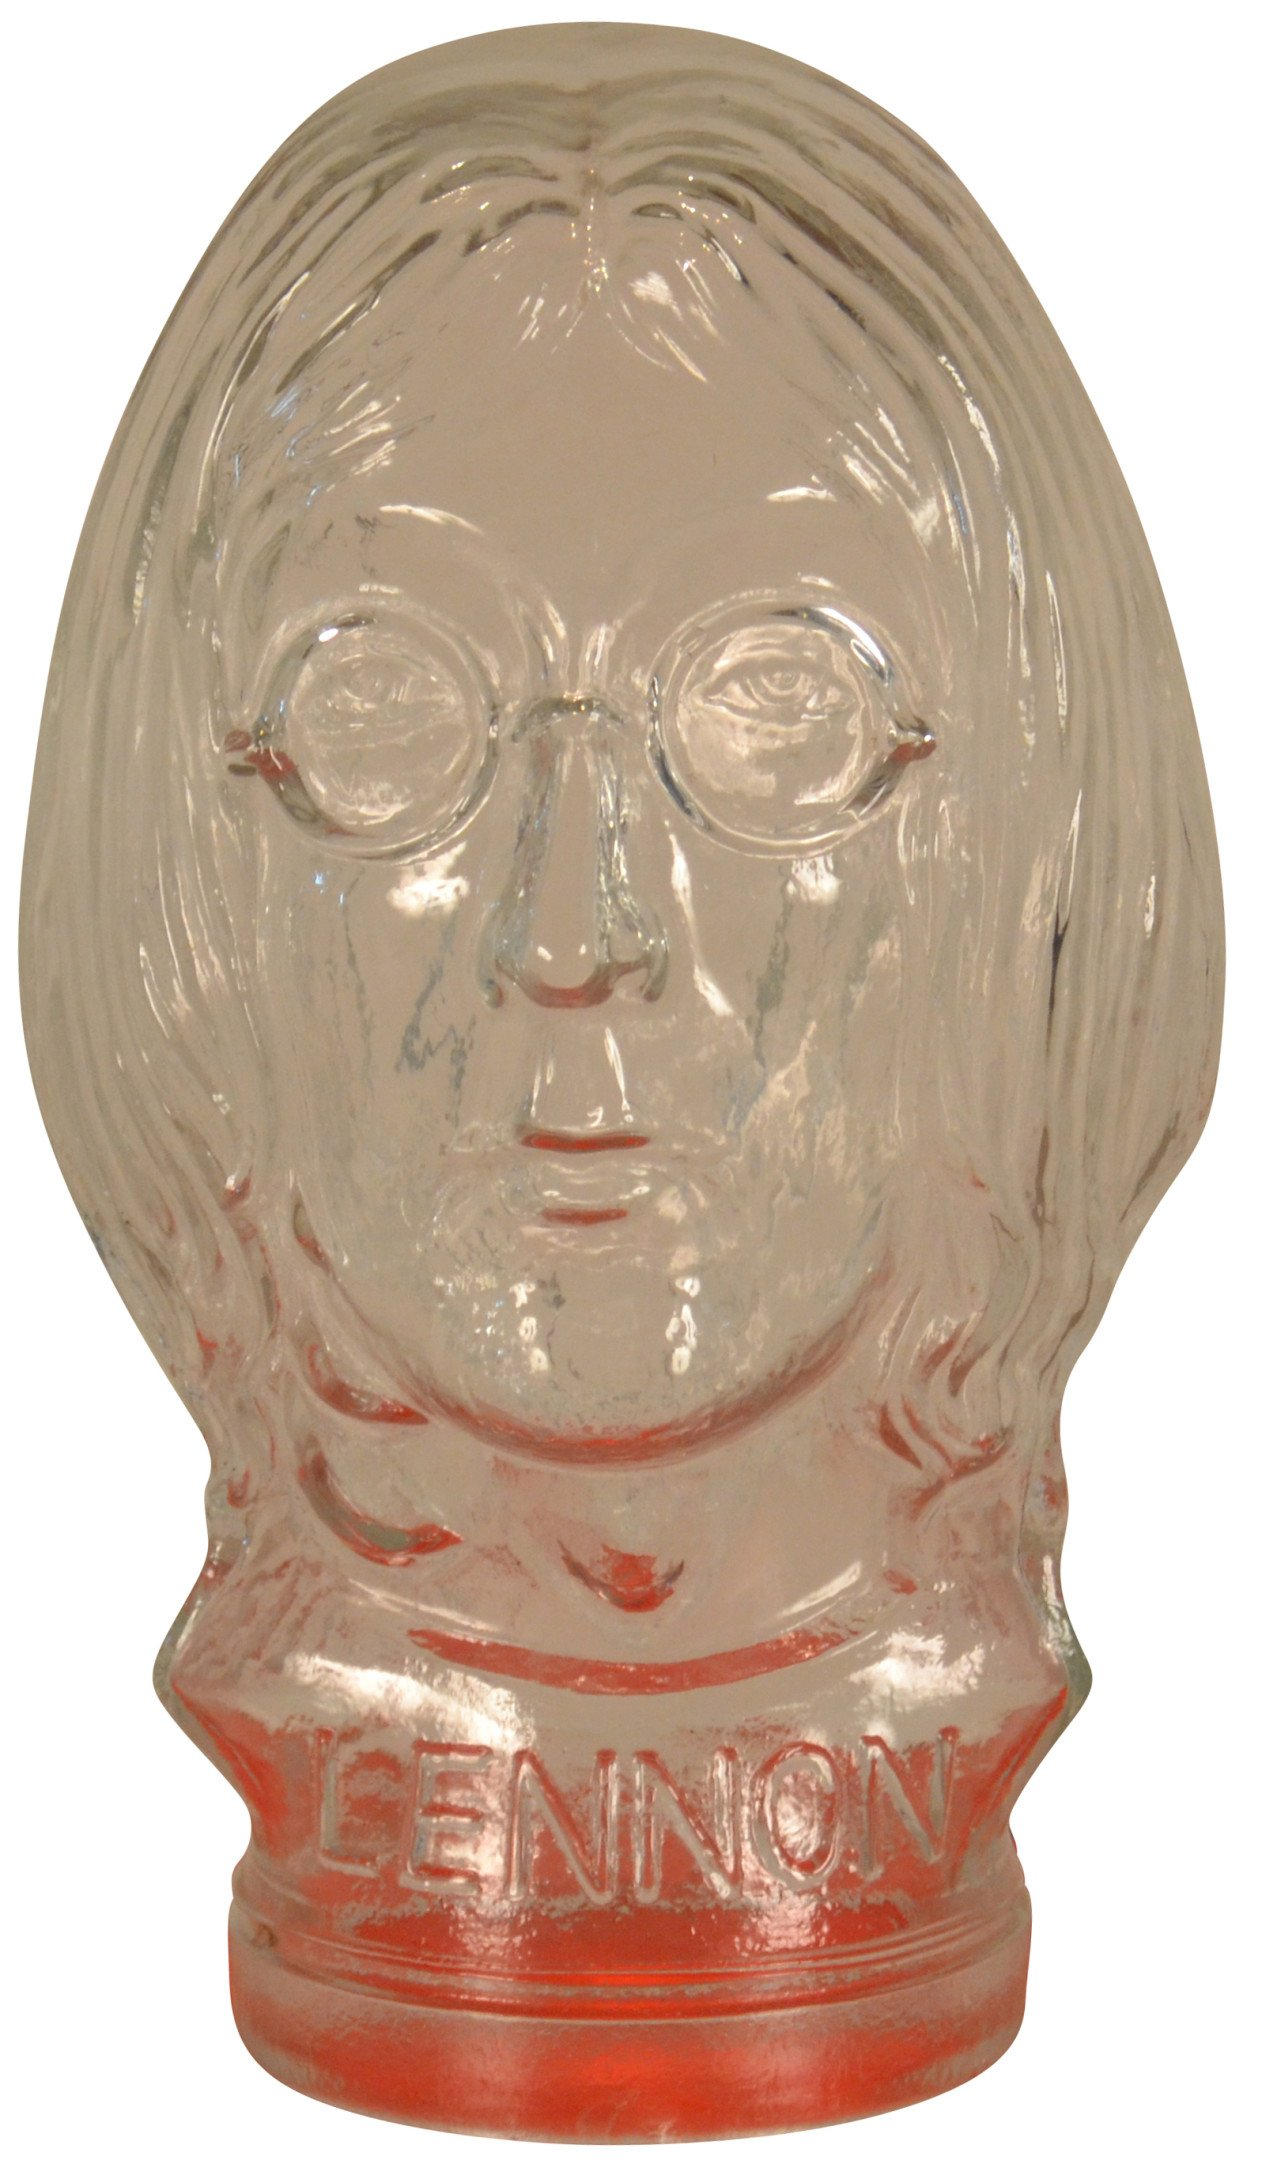 Glass Head Figure of John Lennon, 1970s